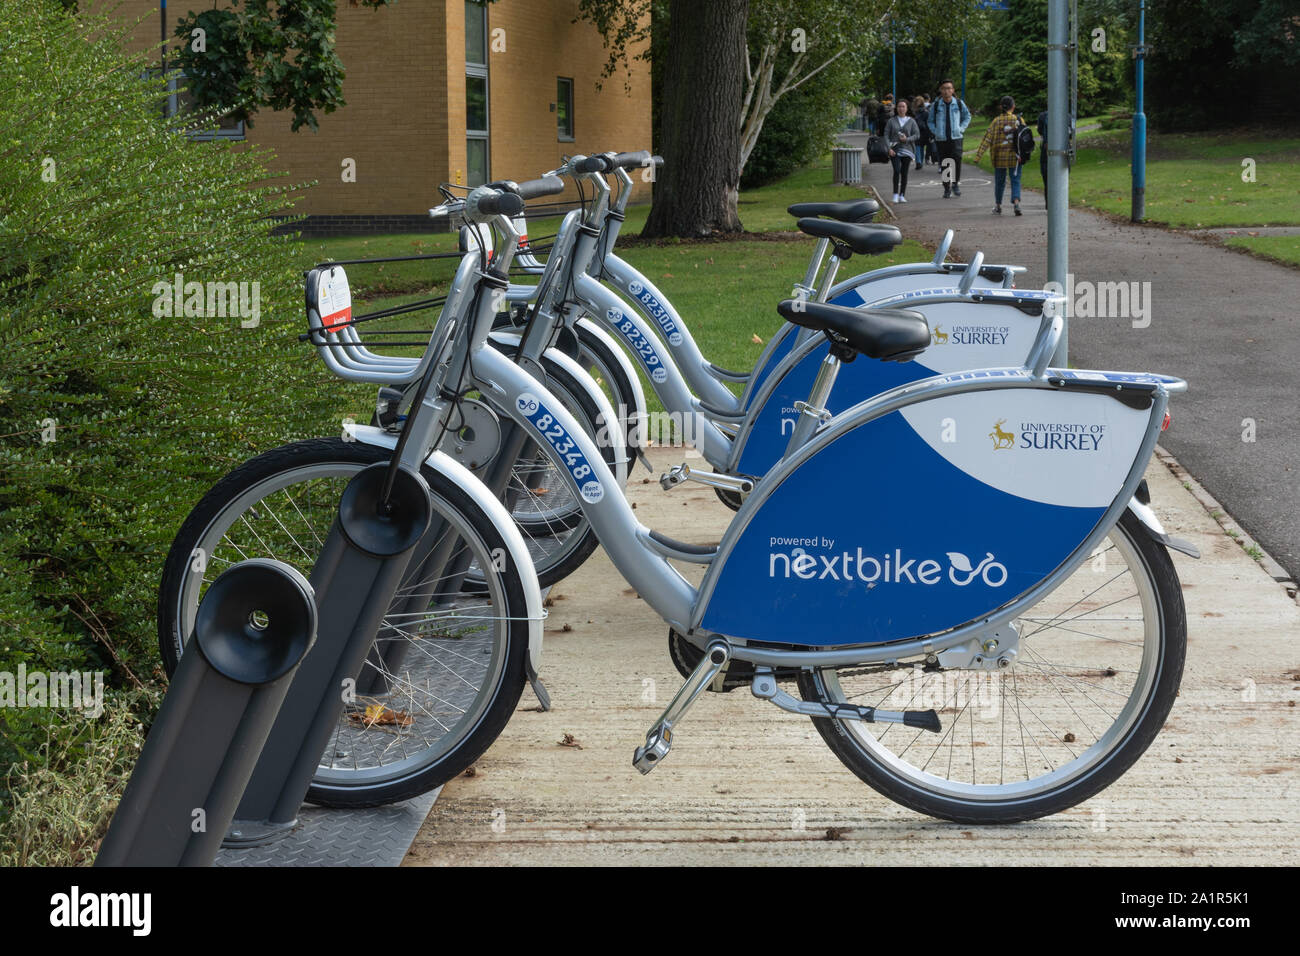 bike-share-scheme-bicycles-by-nextbike-on-the-university-of-surrey-campus-at-guildford-in-surrey-uk-2A1R5K1.jpg